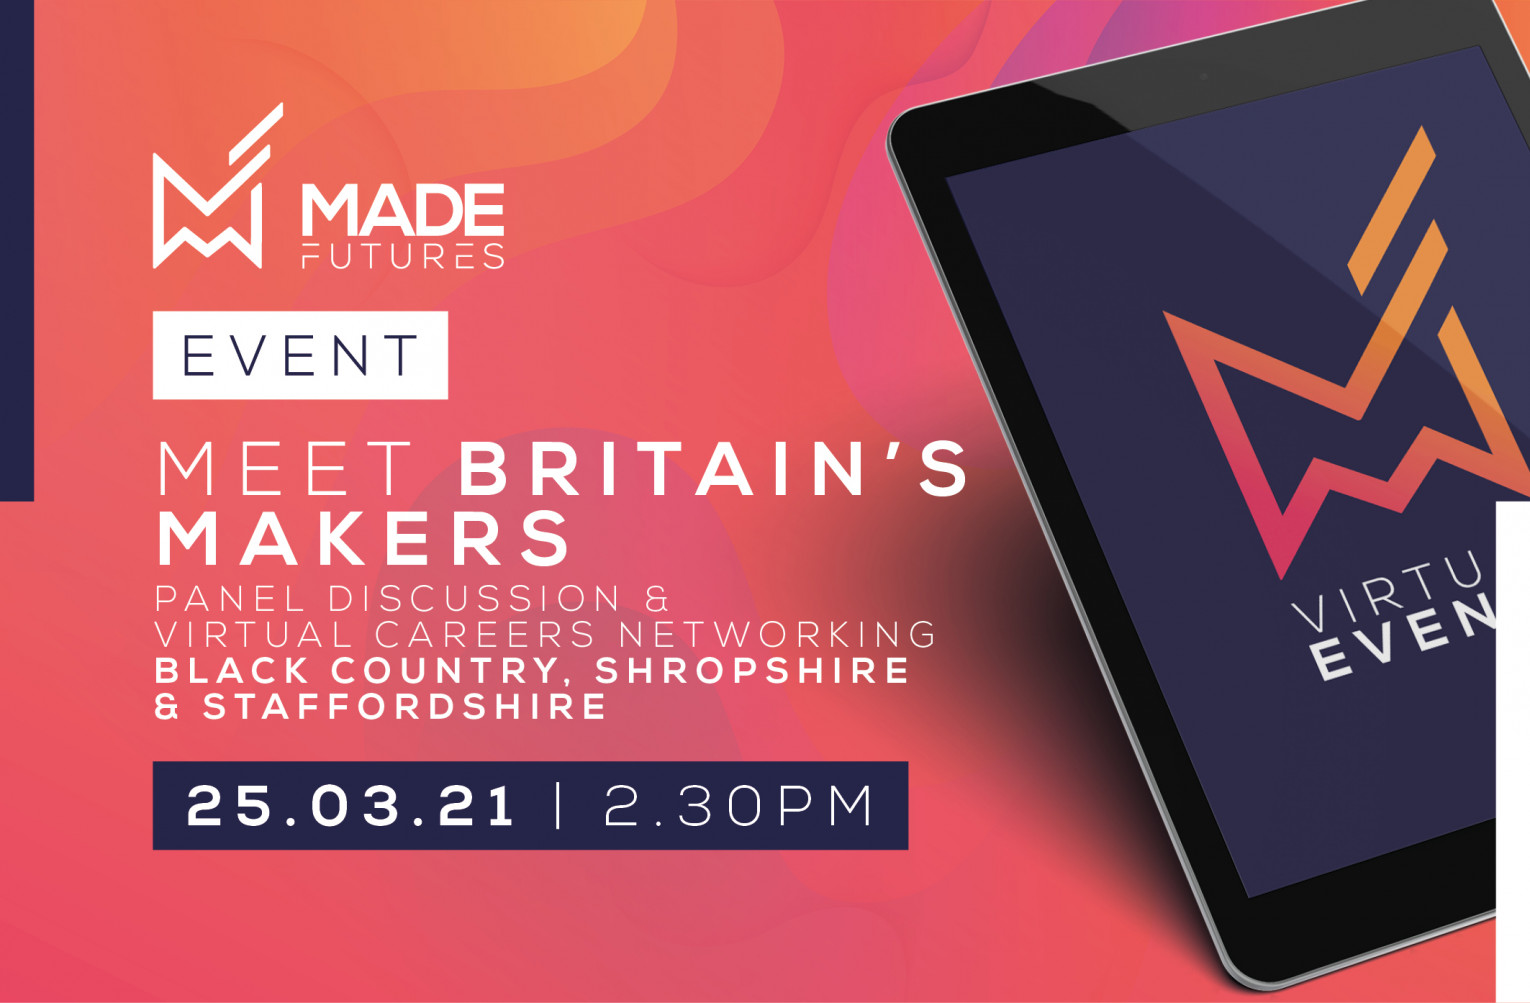 Meet Britain's makers & virtual speed networking - Black Country, Shropshire and Staffordshire